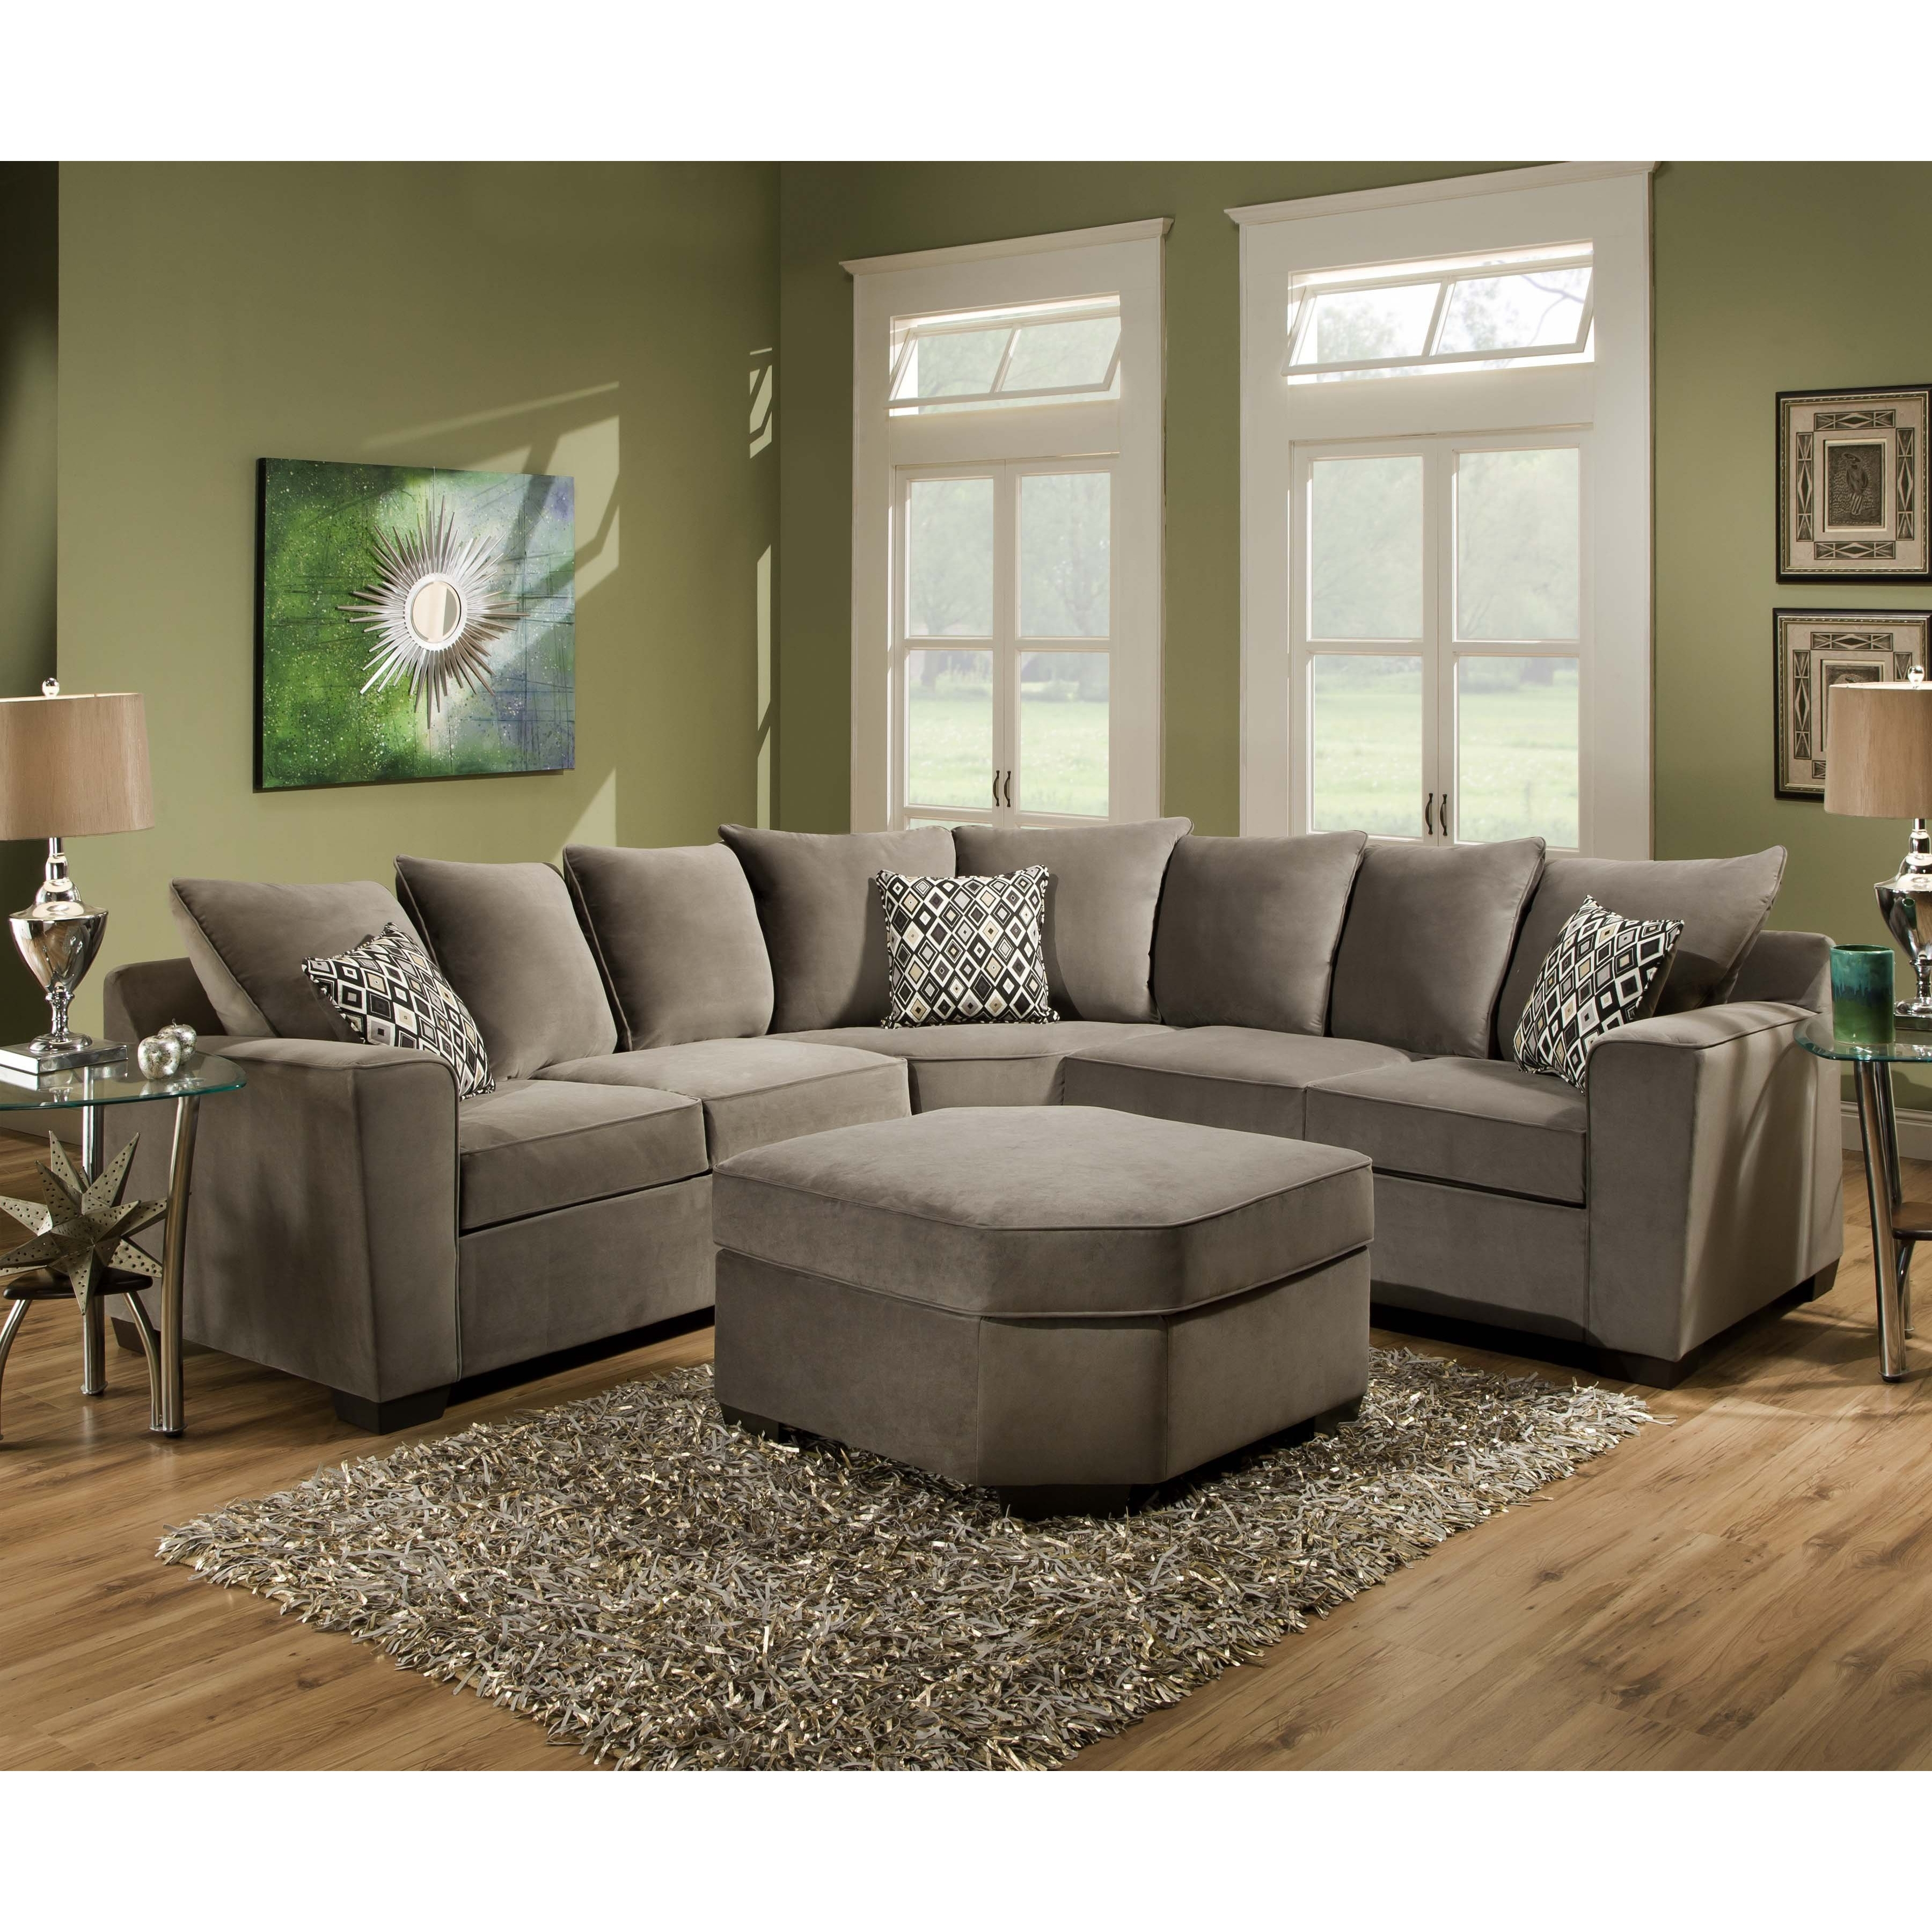 Sofa Attractive Sectionalas Milwaukee For Contemporary Small Spaces Within Canada Sectional Sofas For Small Spaces (Image 9 of 10)